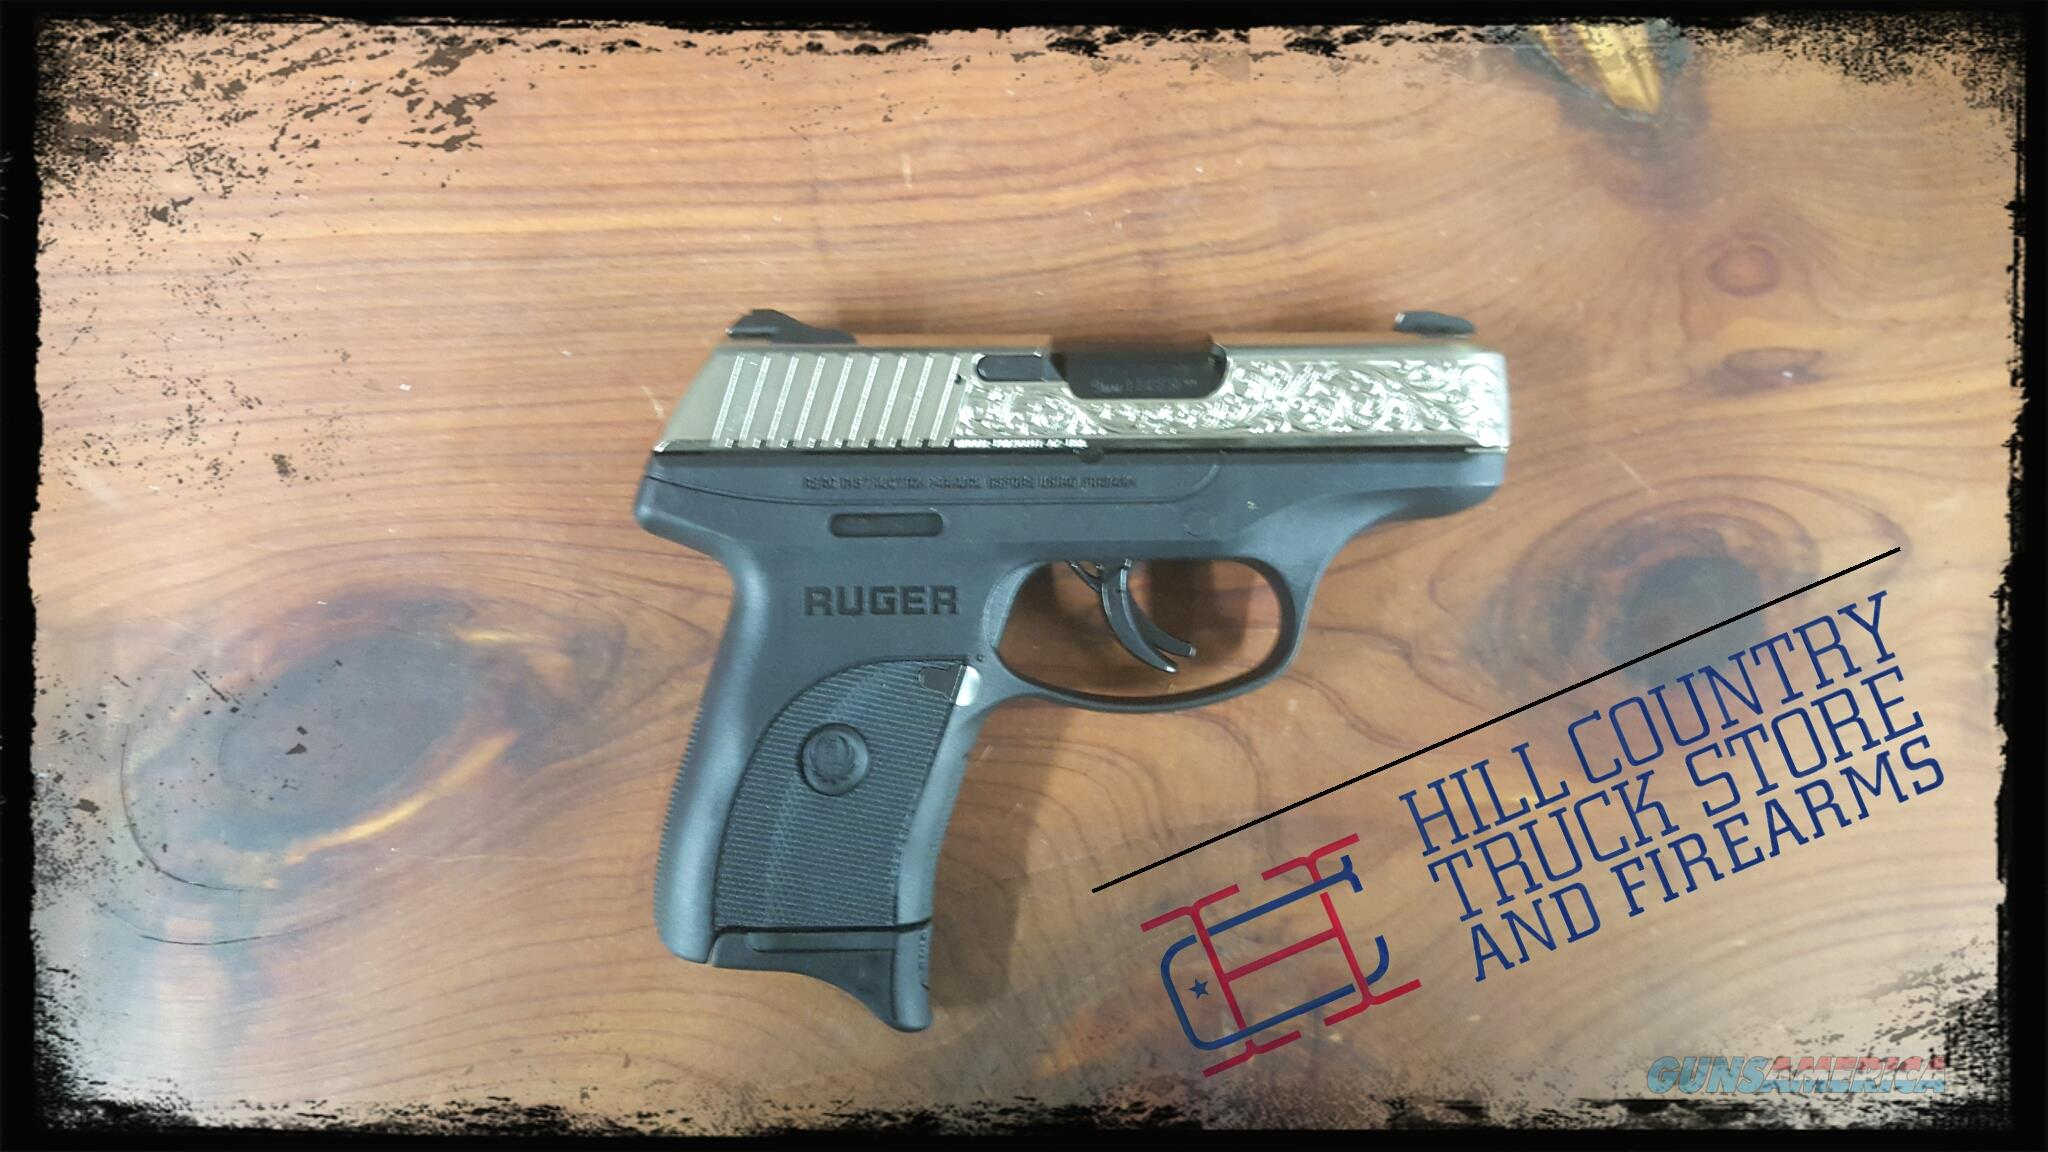 RUG TALO LC9S 9MM ENGRAVED NICKEL  Guns > Pistols > Ruger Semi-Auto Pistols > LC9